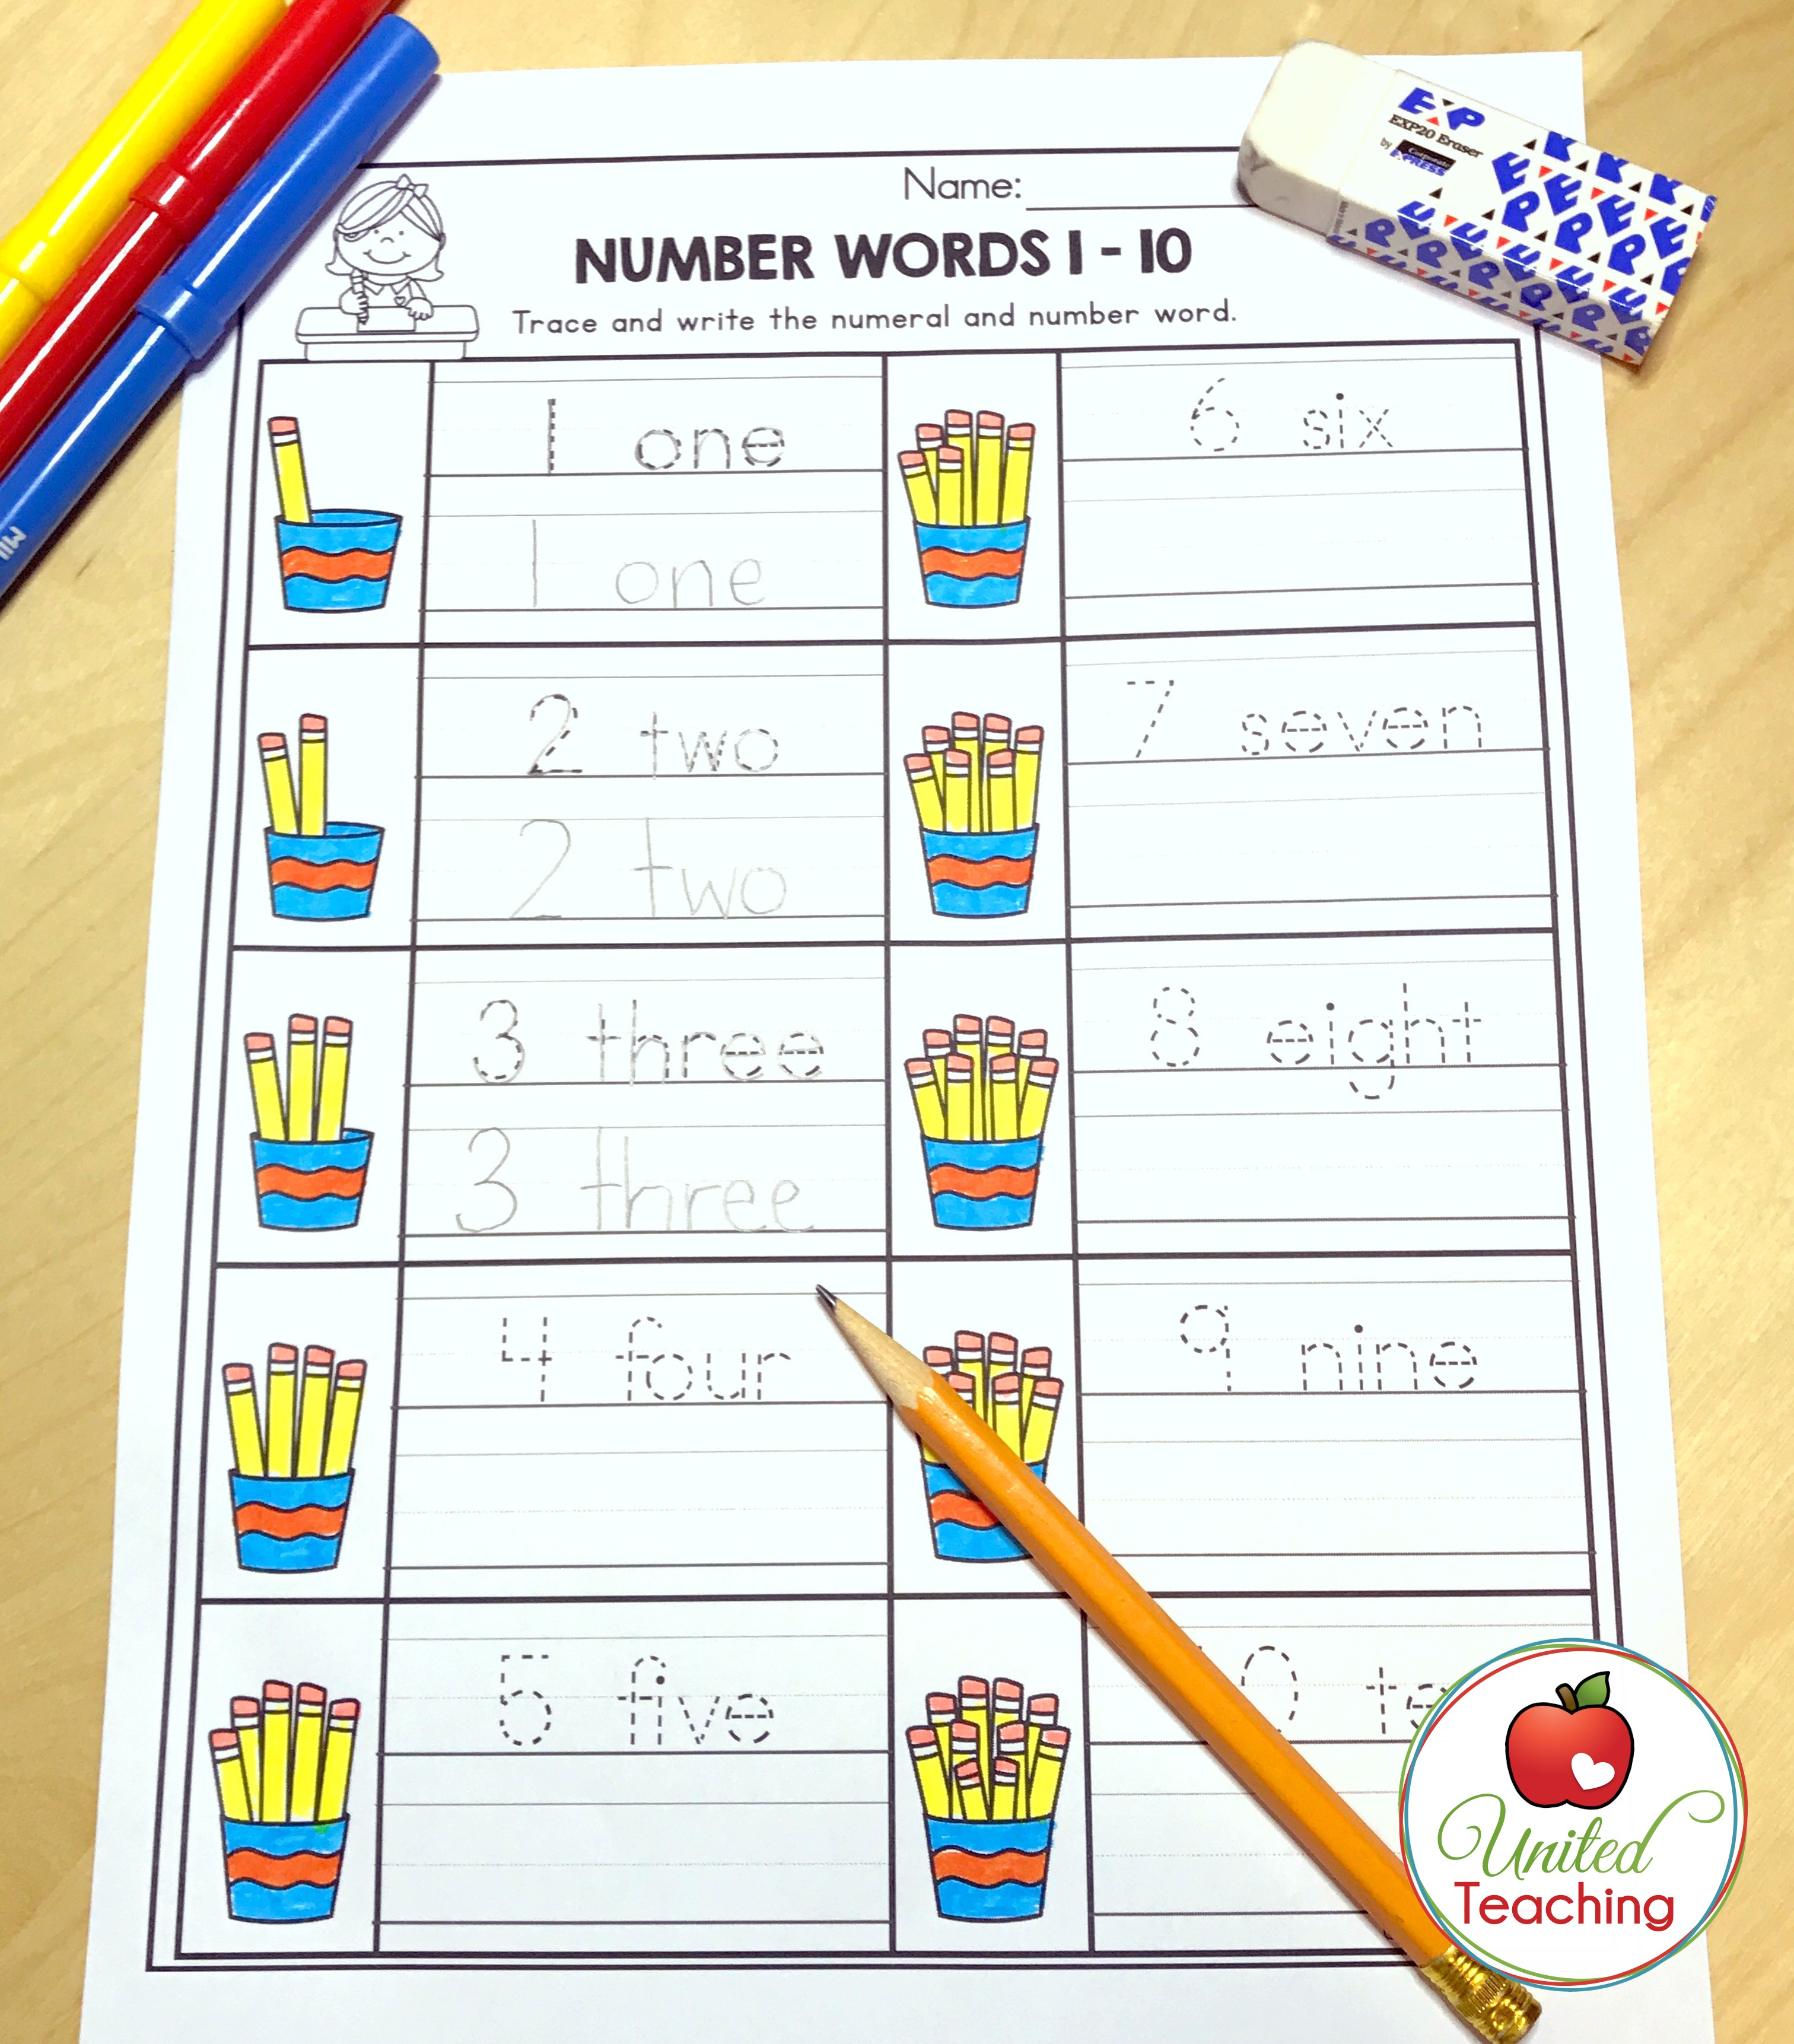 Number Words 1-10